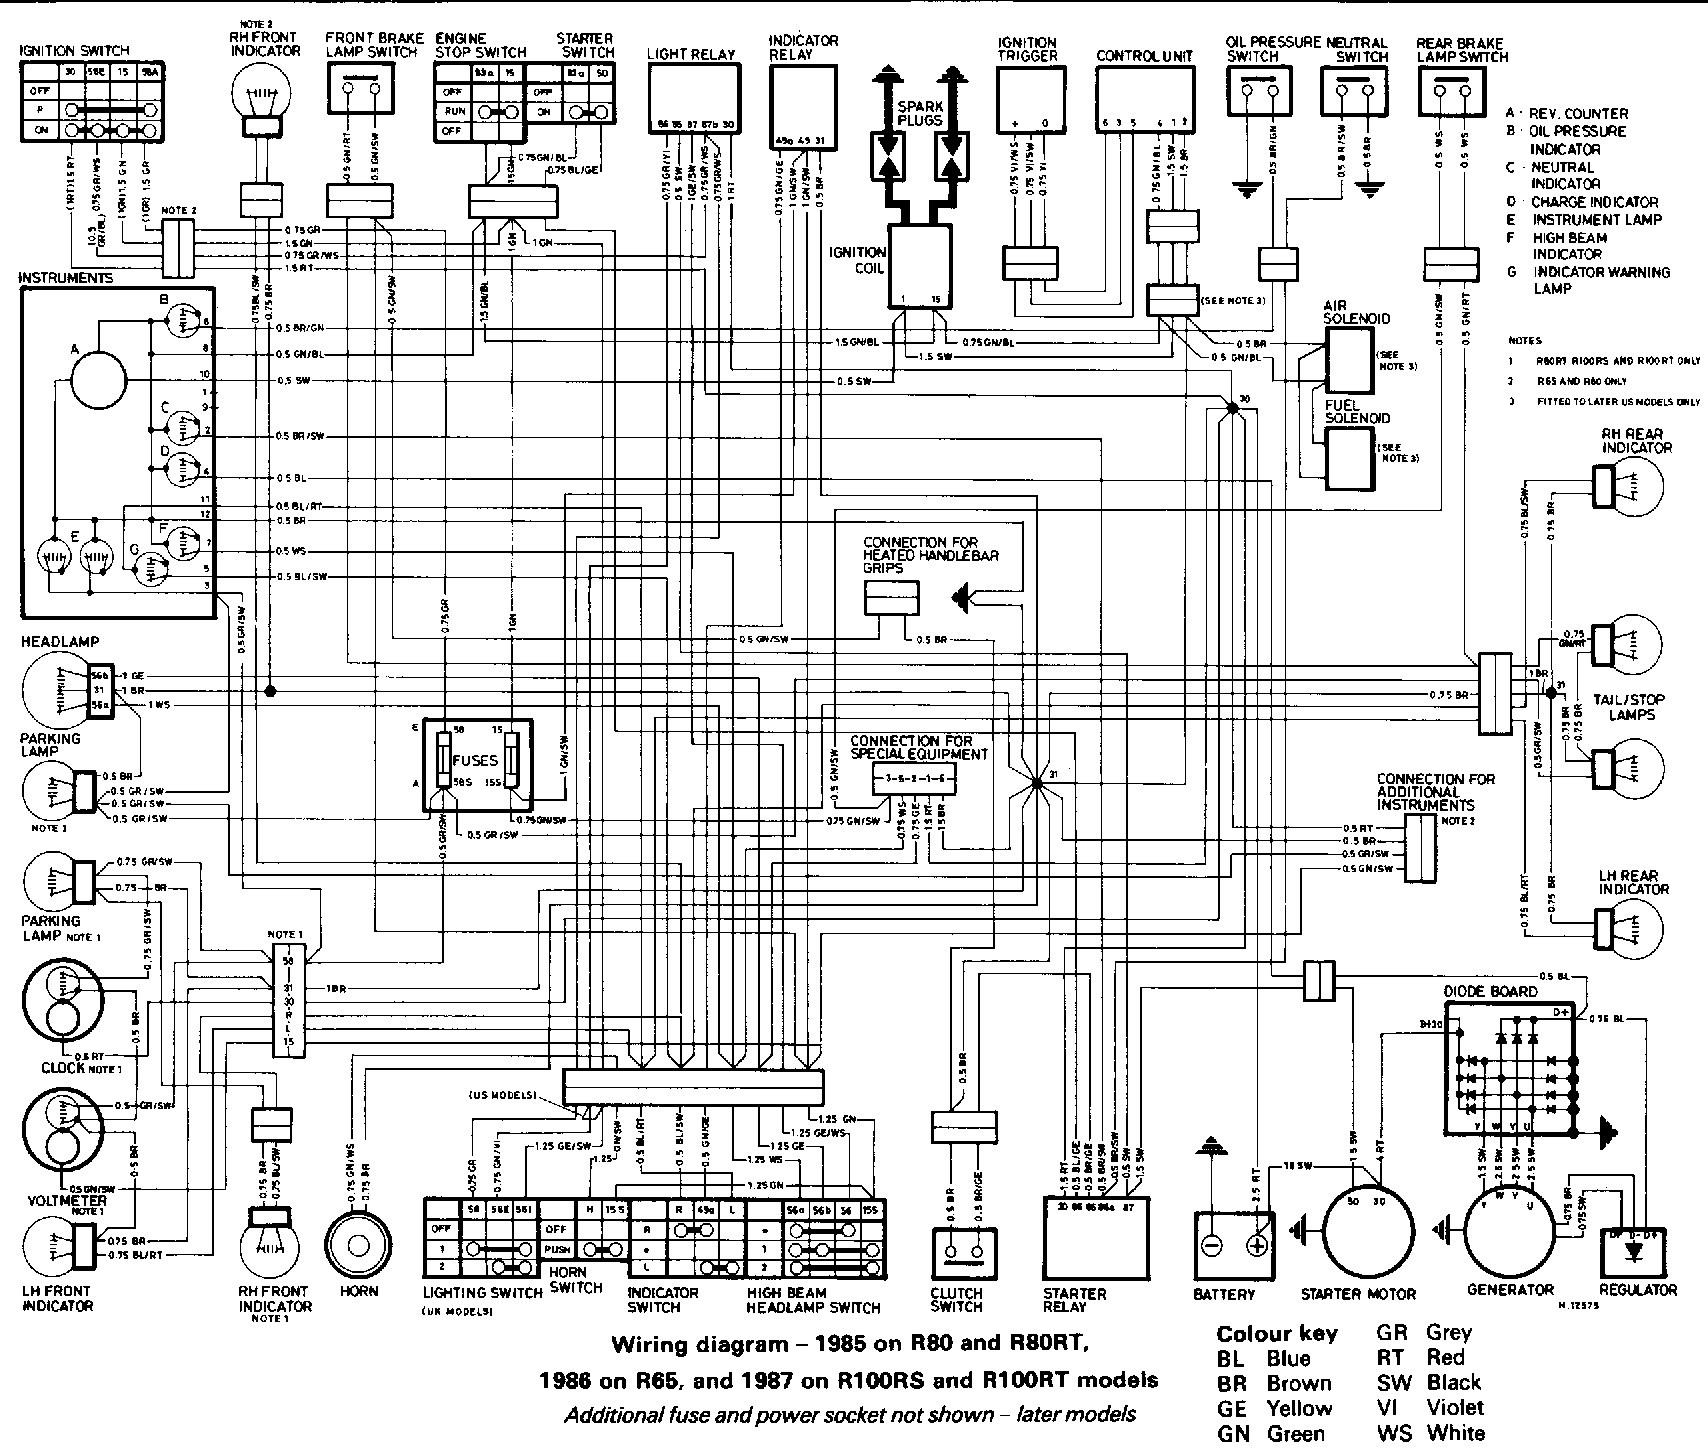 [SCHEMATICS_48IS]  DIAGRAM] 2004 Bmw Z4 Wiring Diagram Picture FULL Version HD Quality Diagram  Picture - 103897.ACCNET.FR | 2004 Bmw Z4 Wiring Diagram |  | Car Voltmeter Wiring Diagram - accnet.fr